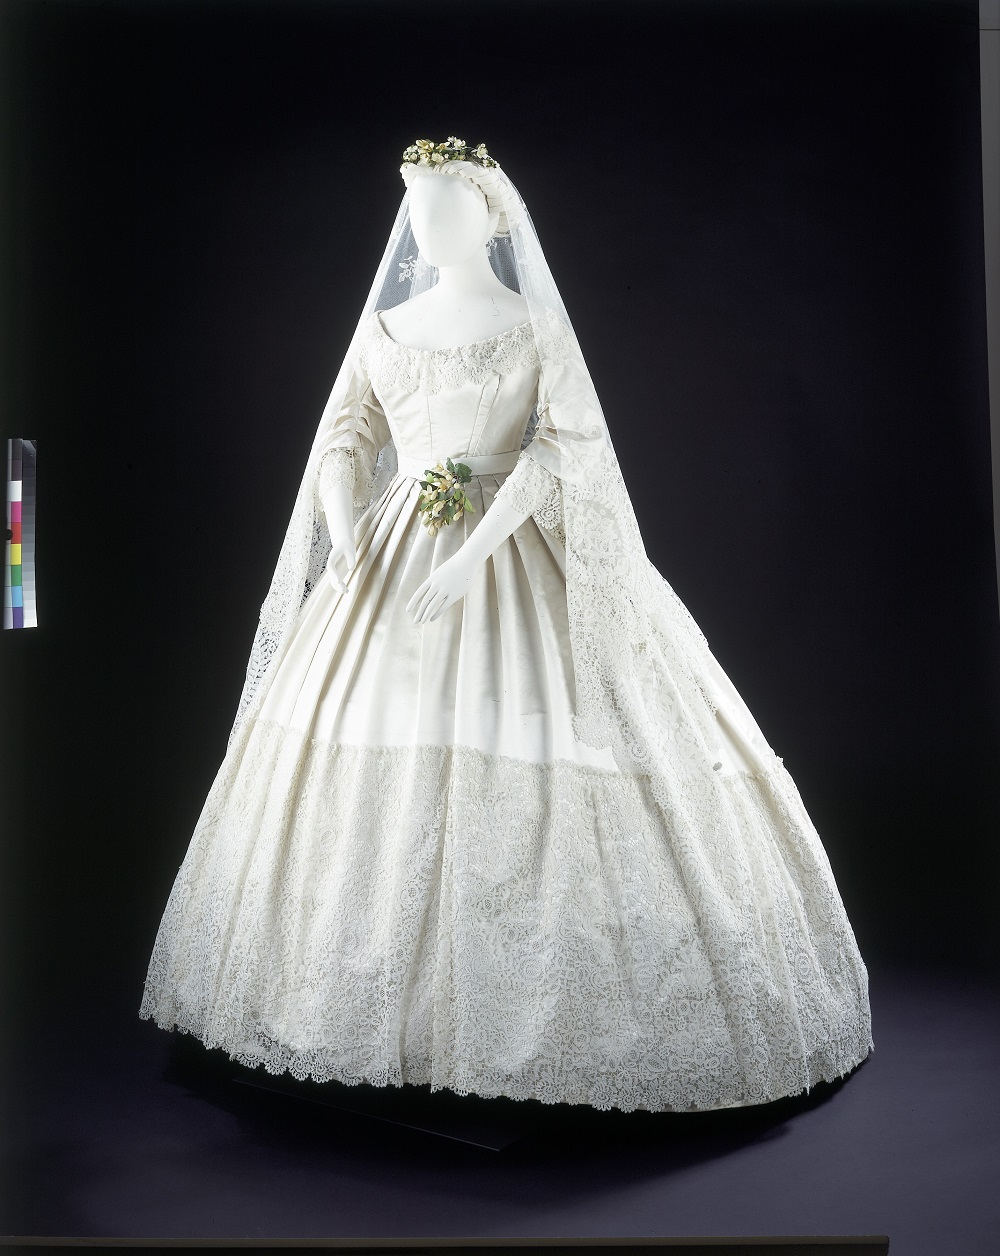 White Satin Wedding Dress Trimmed With Honiton Lace 1865